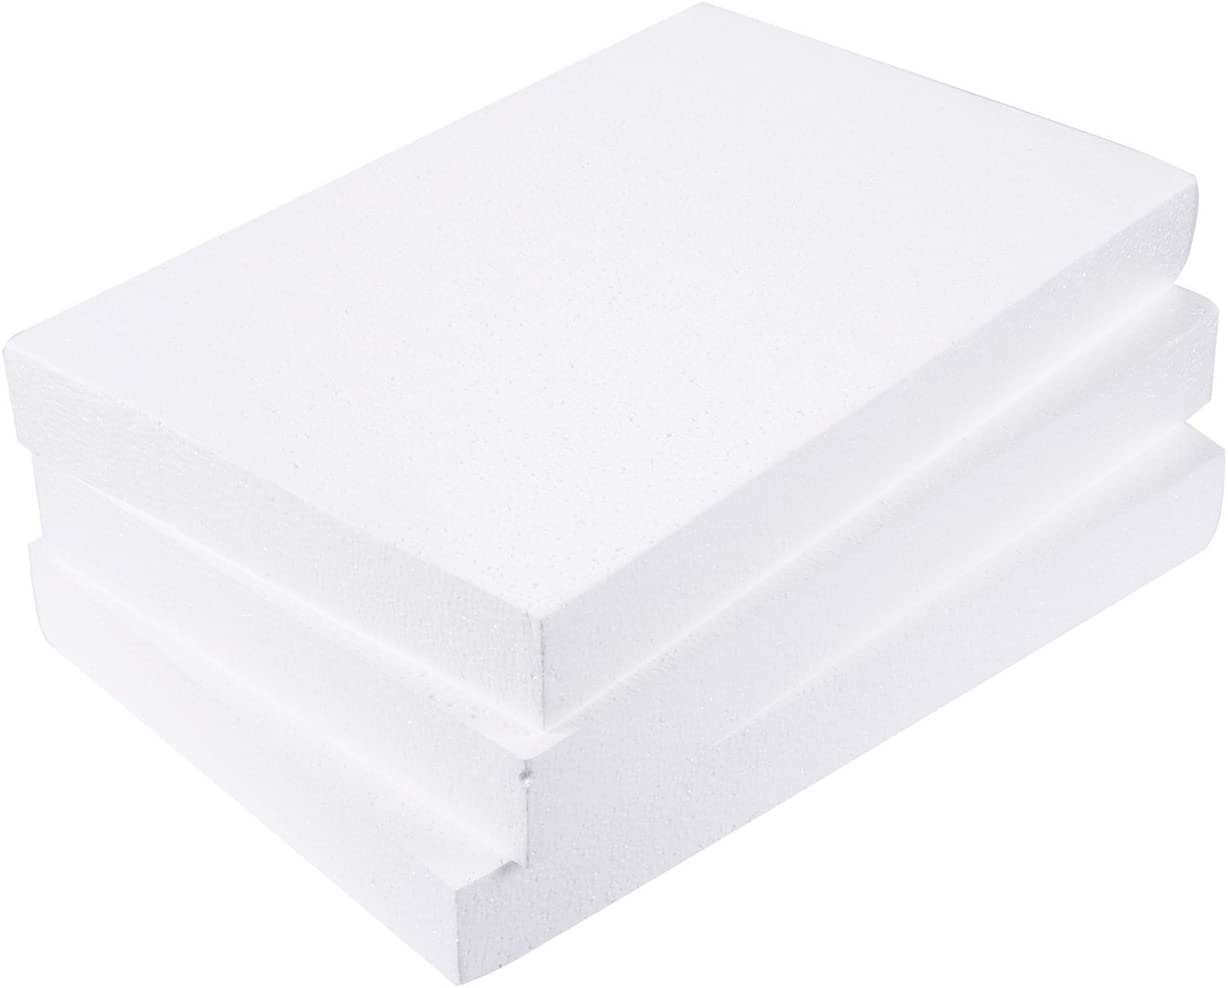 Juvale Foam Rectangle, Arts and Crafts Supplies (17 x 11 x 2 in, 3-Pack)